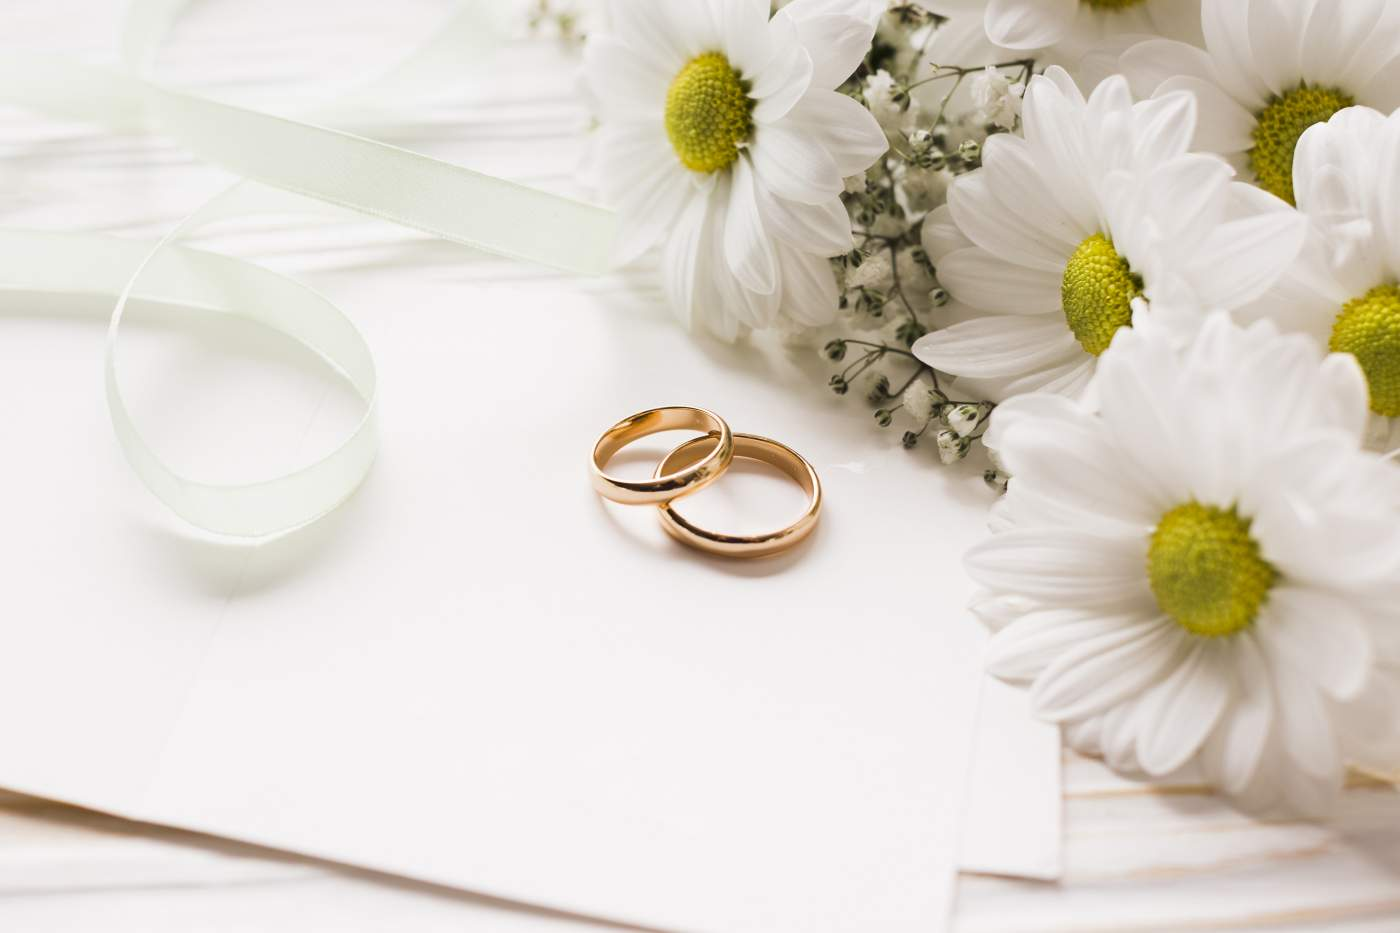 Blooming flowers with engagement rings